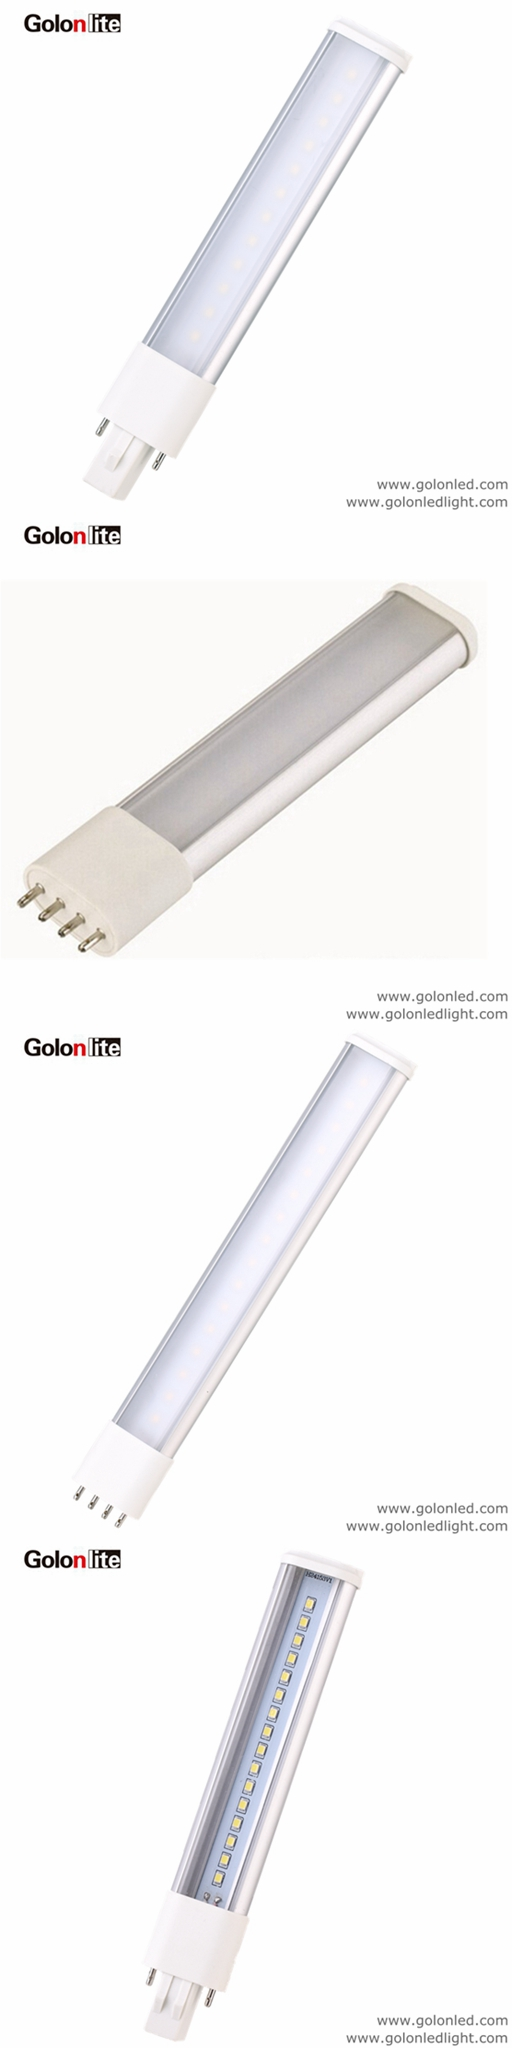 Led G23 G23 Led Bulb Led Plug Lamp 2 Pins 6w Replace Pls 11w 13w 180mm